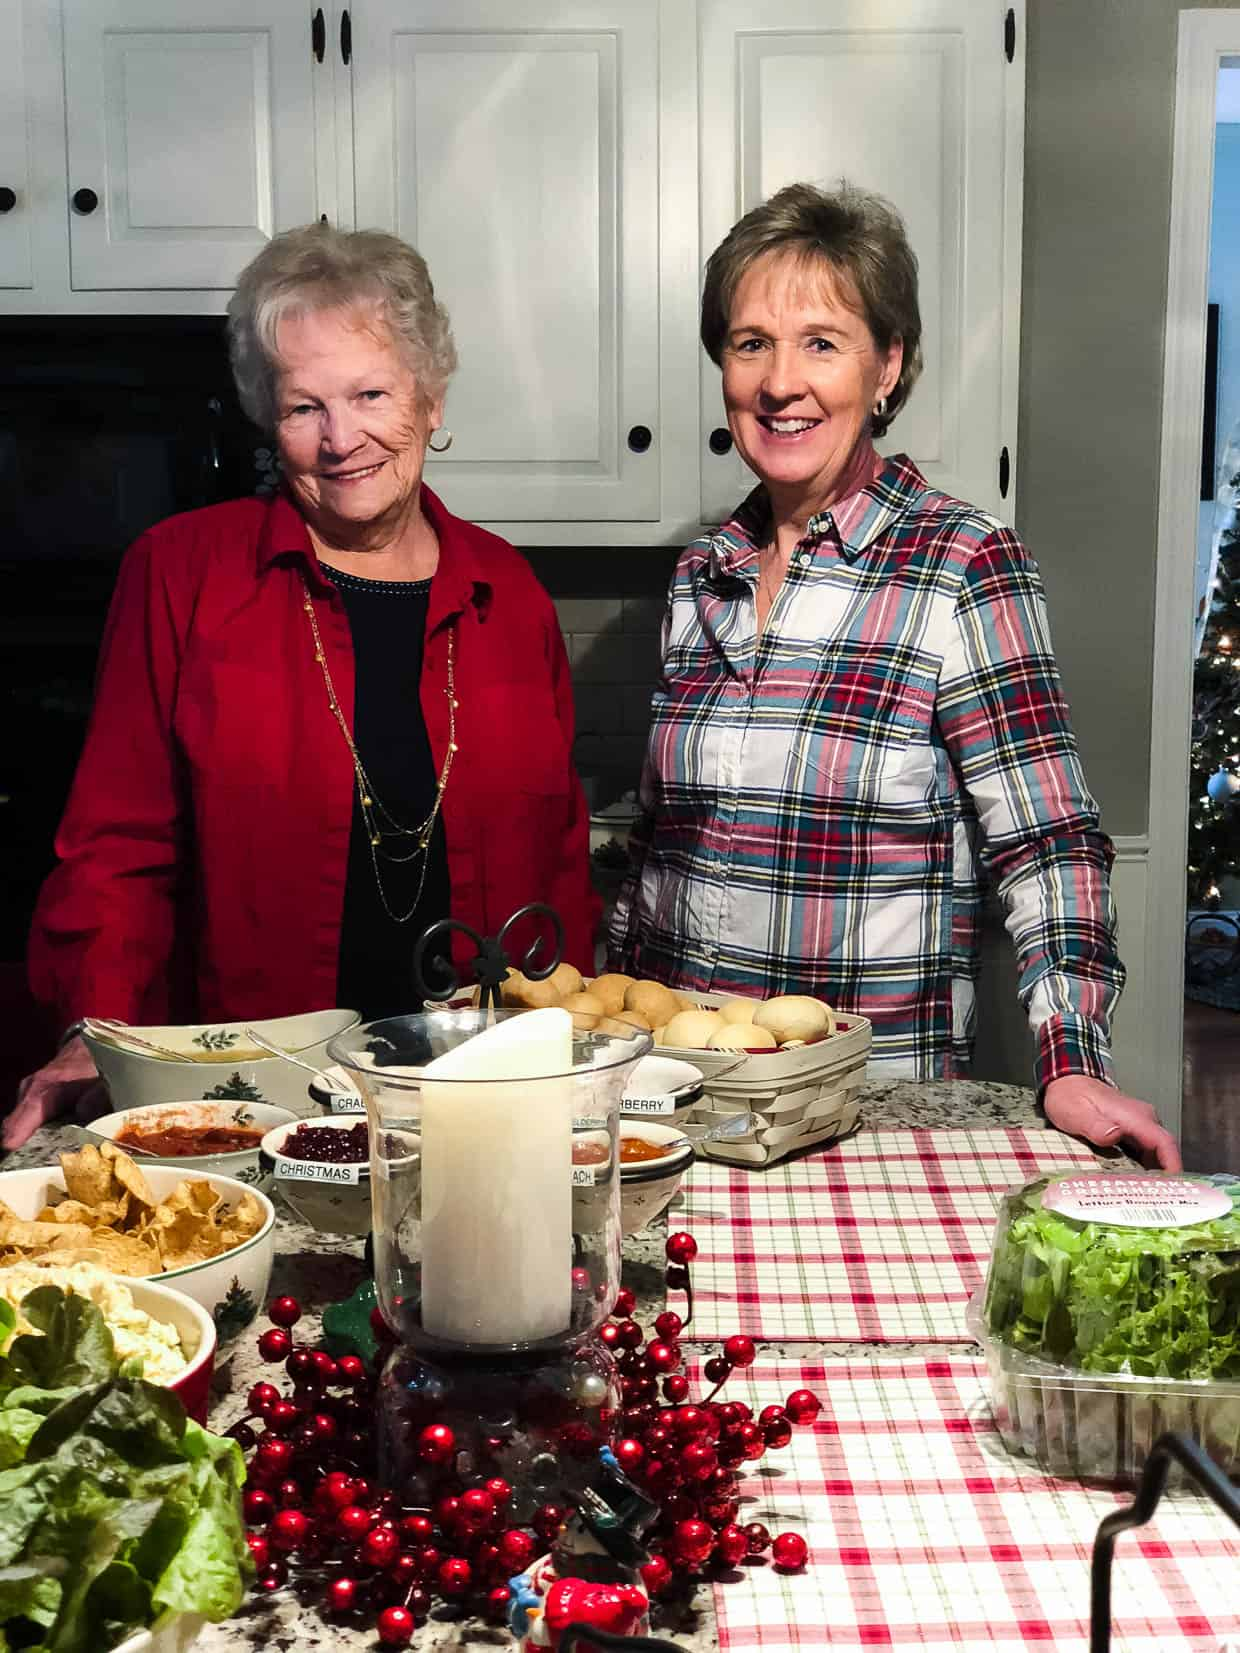 The hospitality Jenny Rhodes and her mom shared during a Chicken Check In was heartwarming. #sponsored by National Chicken Council